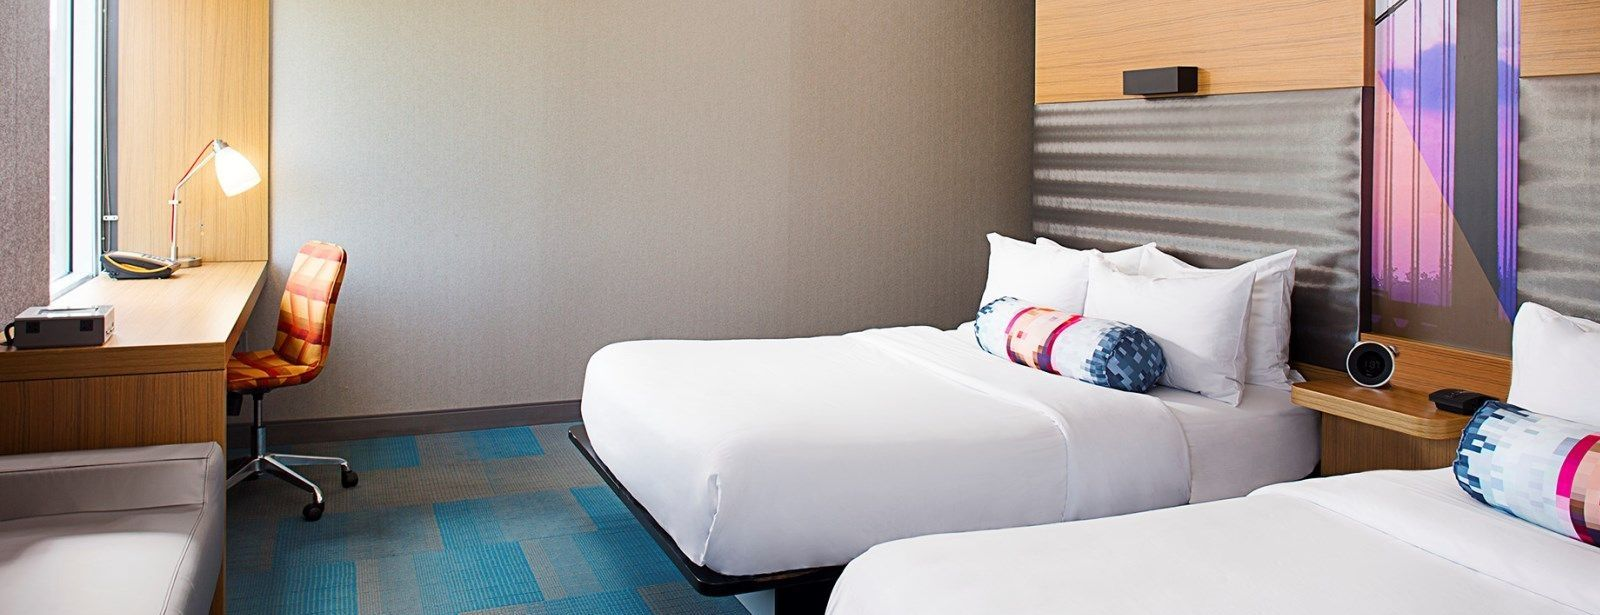 Philadelphia Accommodations - Aloft Queen Room